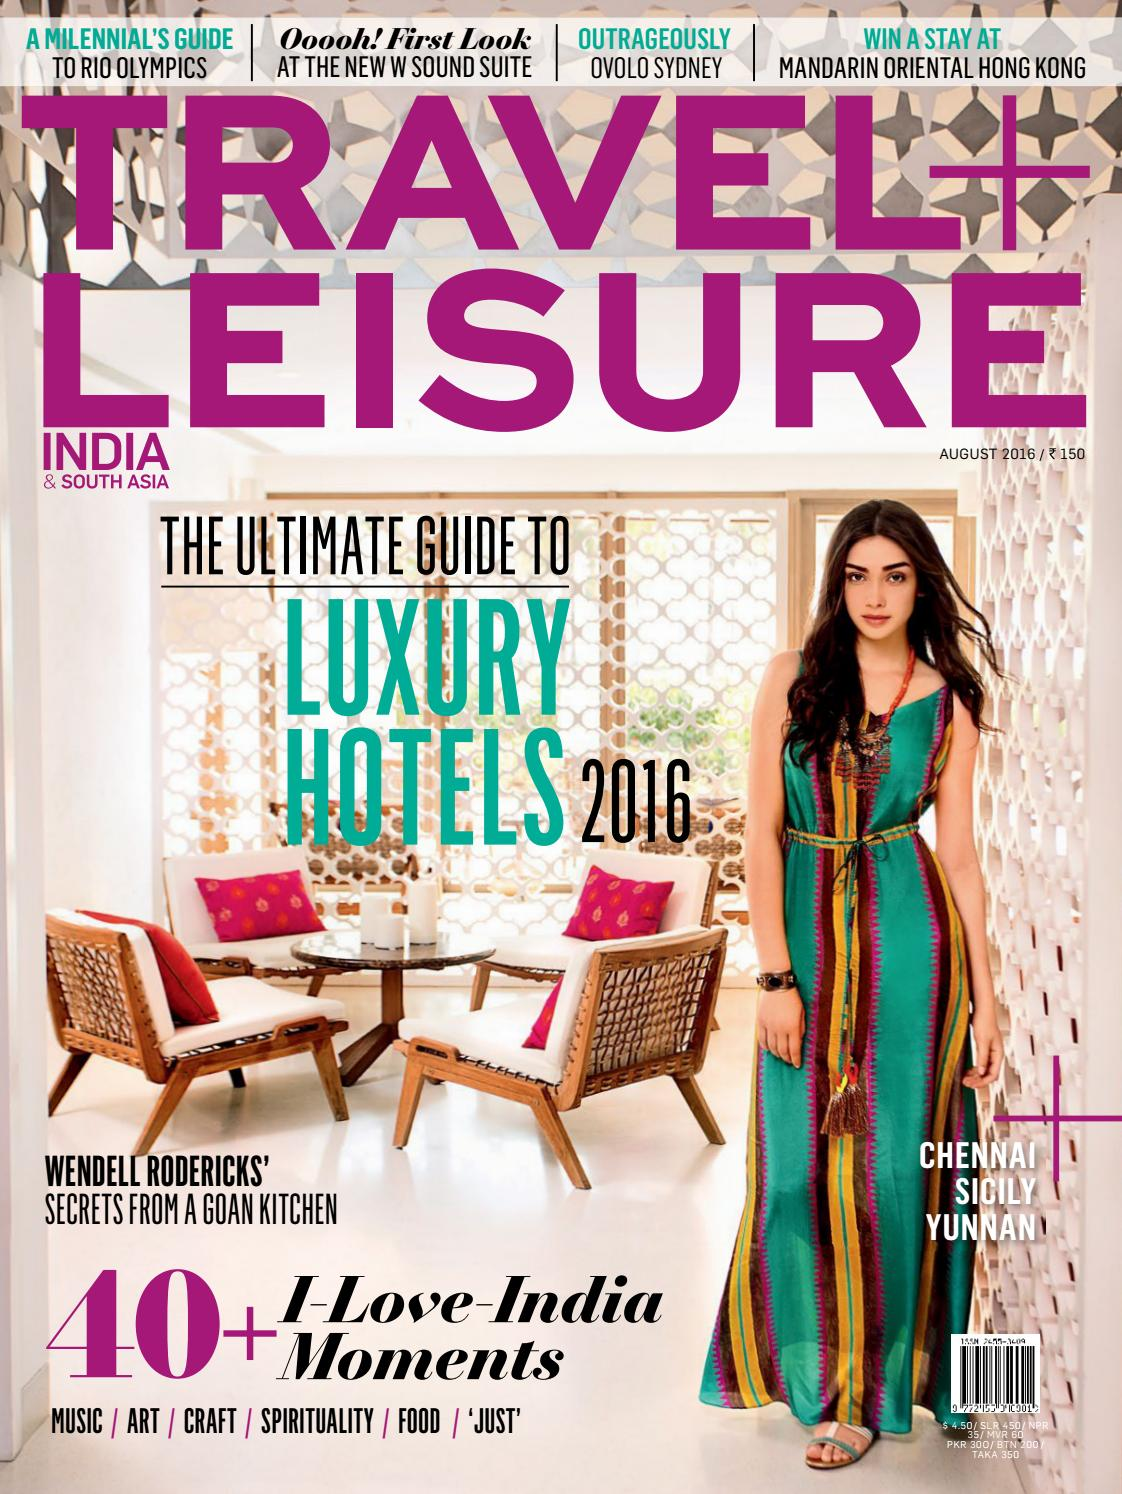 b8576b96a8a7 Travel leisure India by Passion International Travel   Tours - issuu